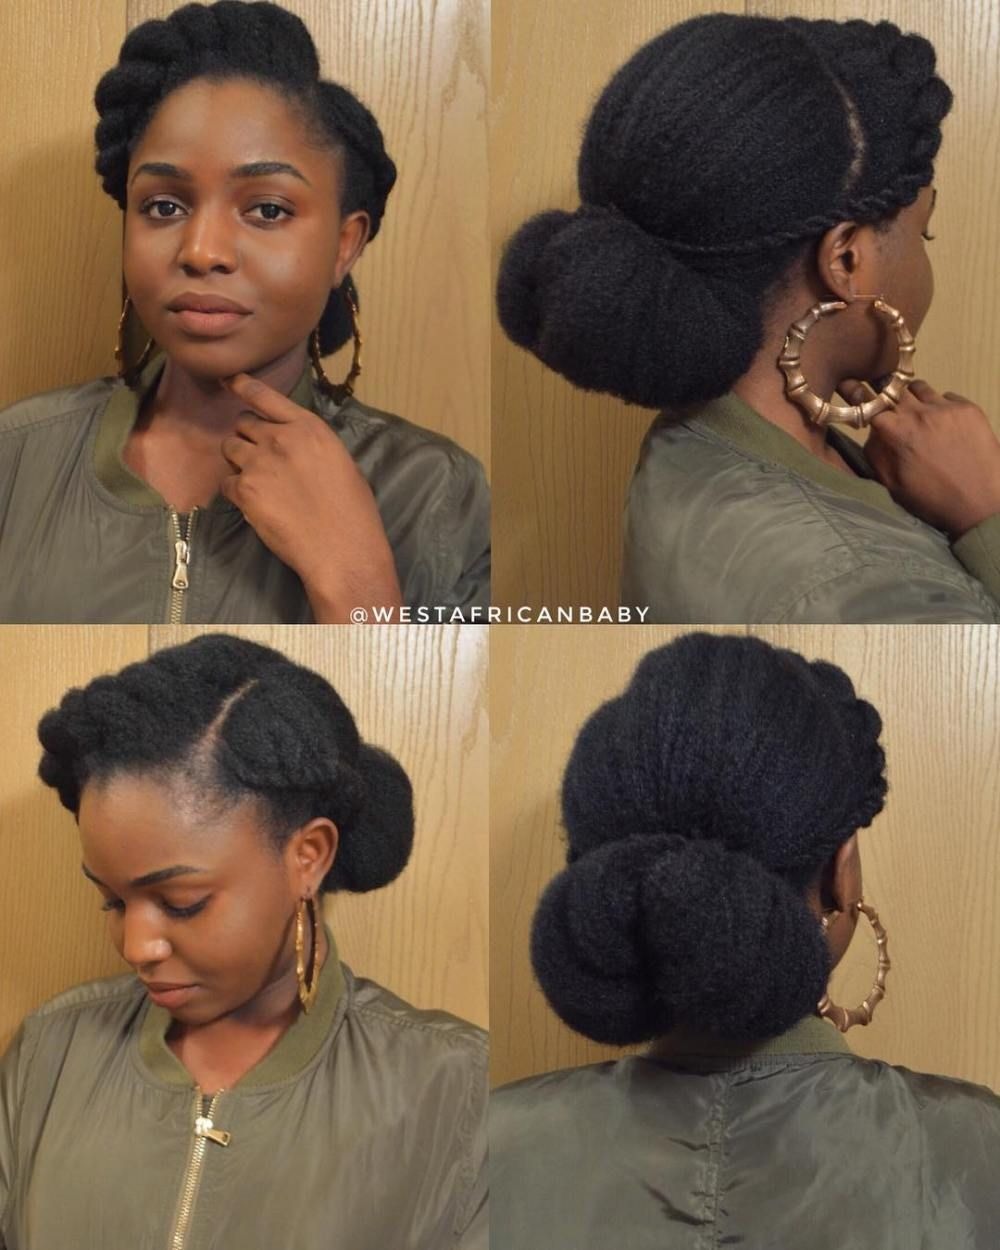 60 Easy And Showy Protective Hairstyles For Natural Hair Protective Hairstyles For Natural Hair Natural Hair Styles Natural Hair Styles Easy